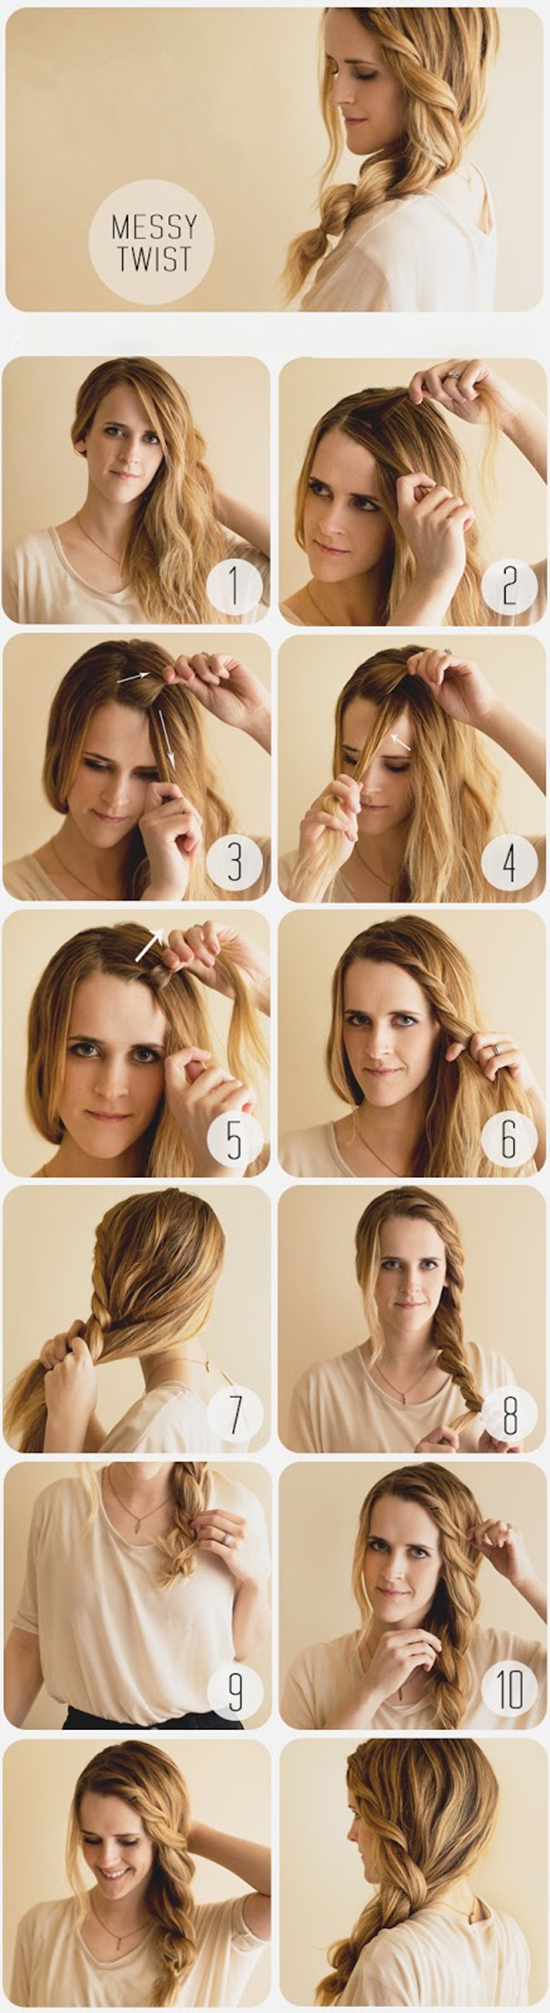 Top 7 Hairstyles Girl In Their 20s Can Style For Autumn Hair Styles Hair Long Hair Styles